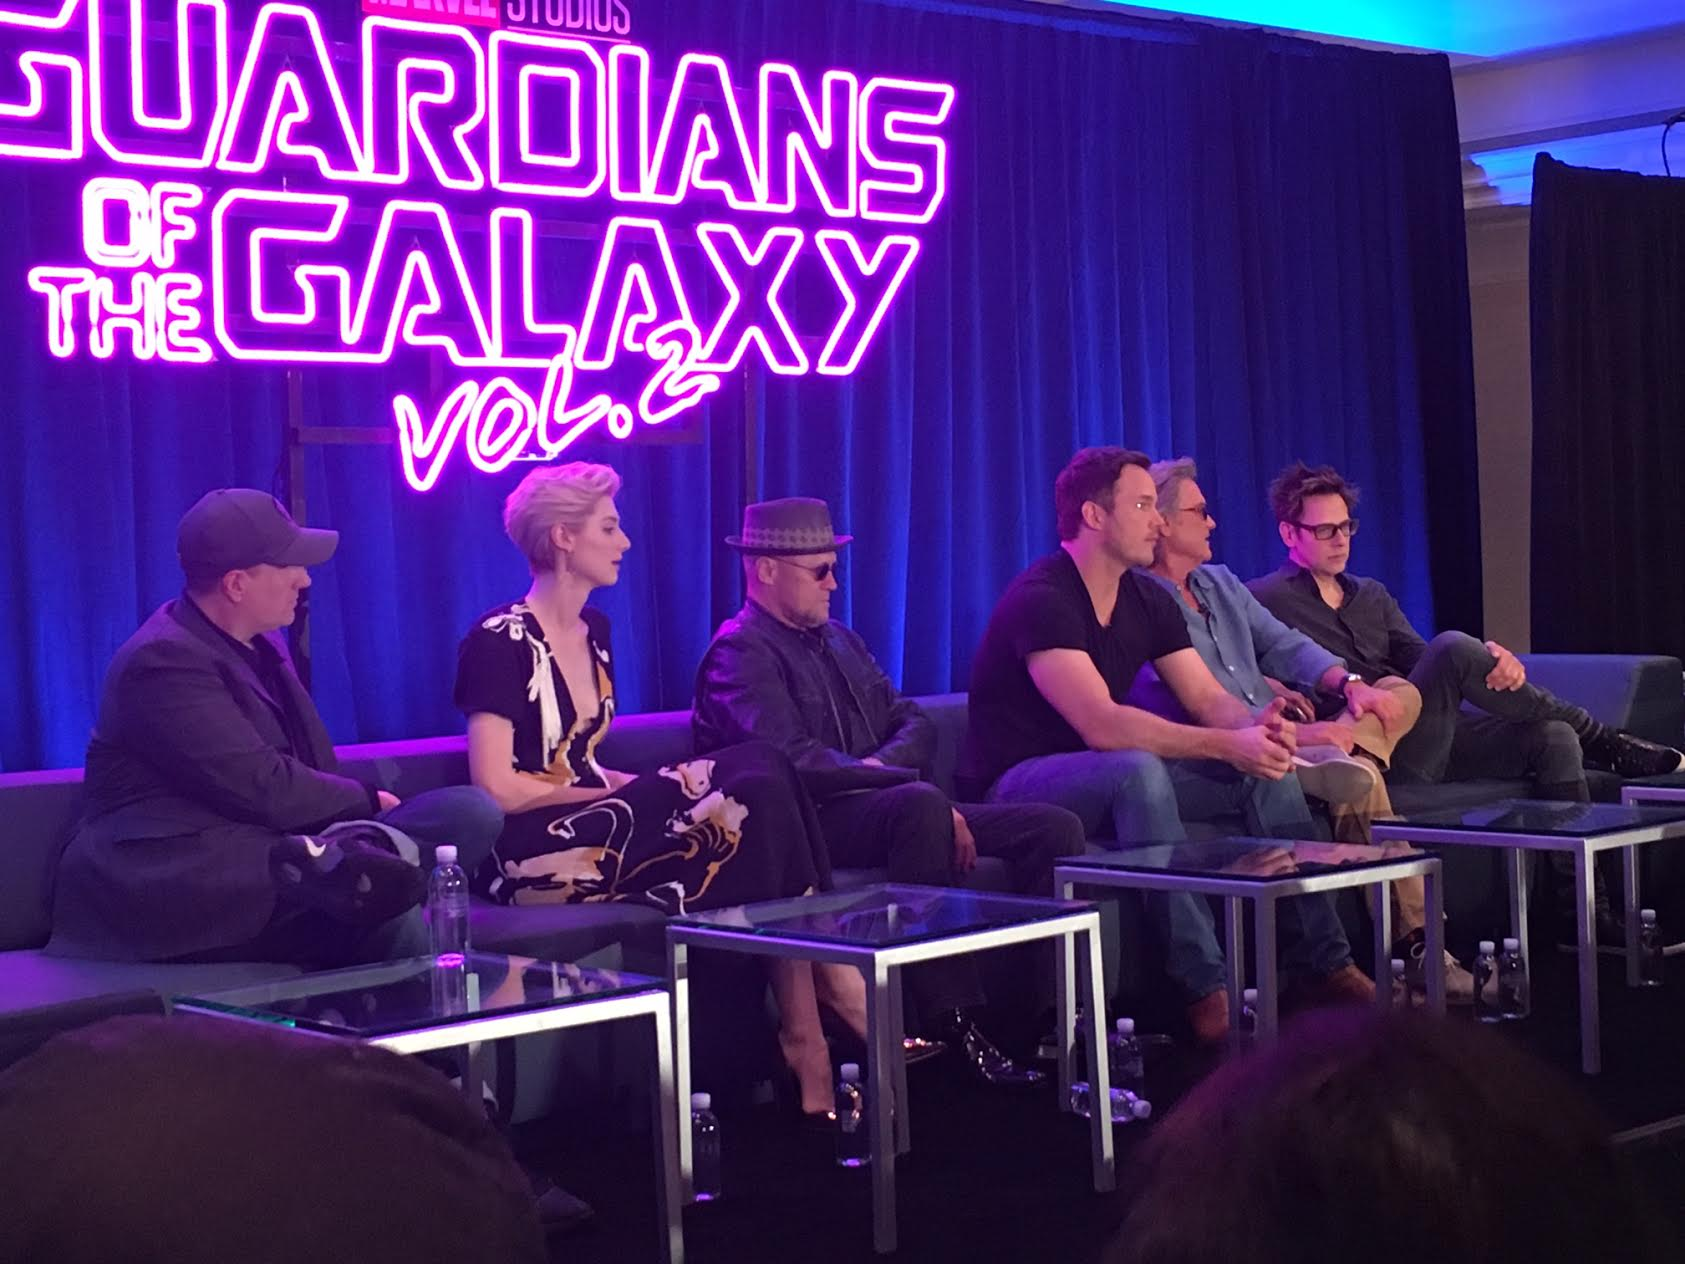 Recap of the Guardians of the Galaxy, Vol. 2 Press Junket